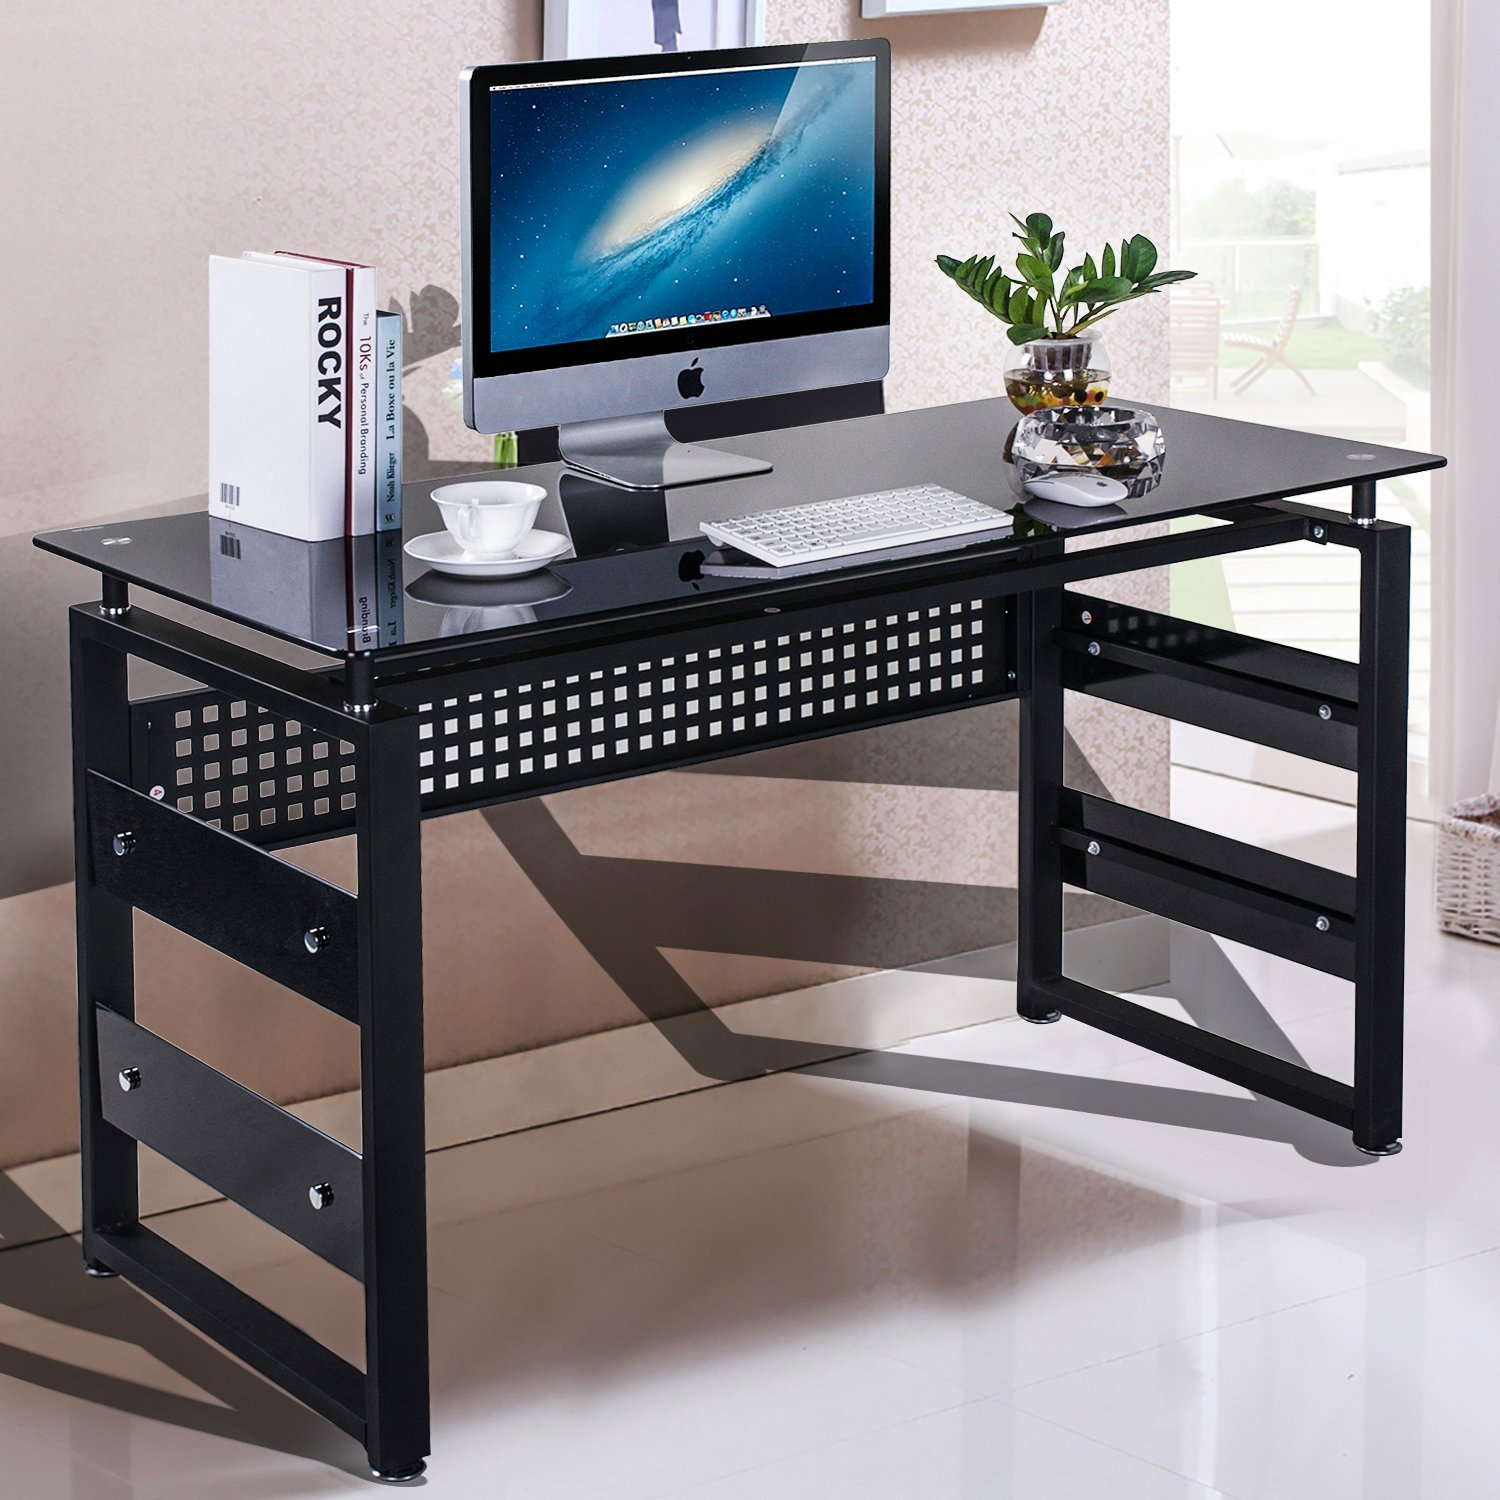 Merax Home and Office Computer Writing Desk Table (Espresso)